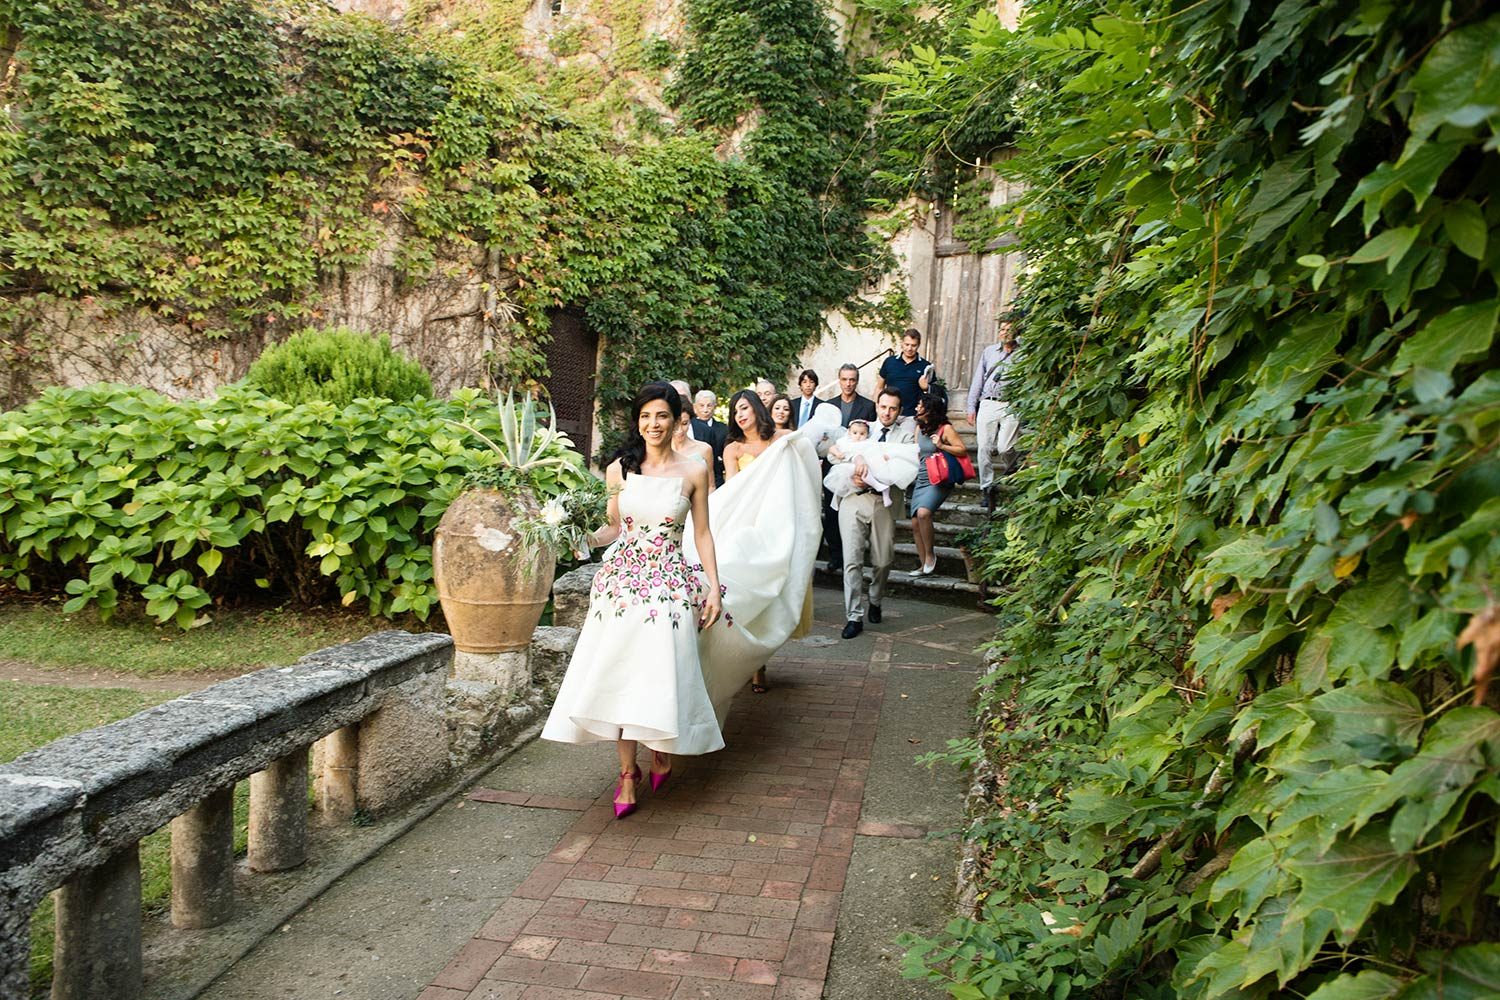 Weddings Europe's hot spots